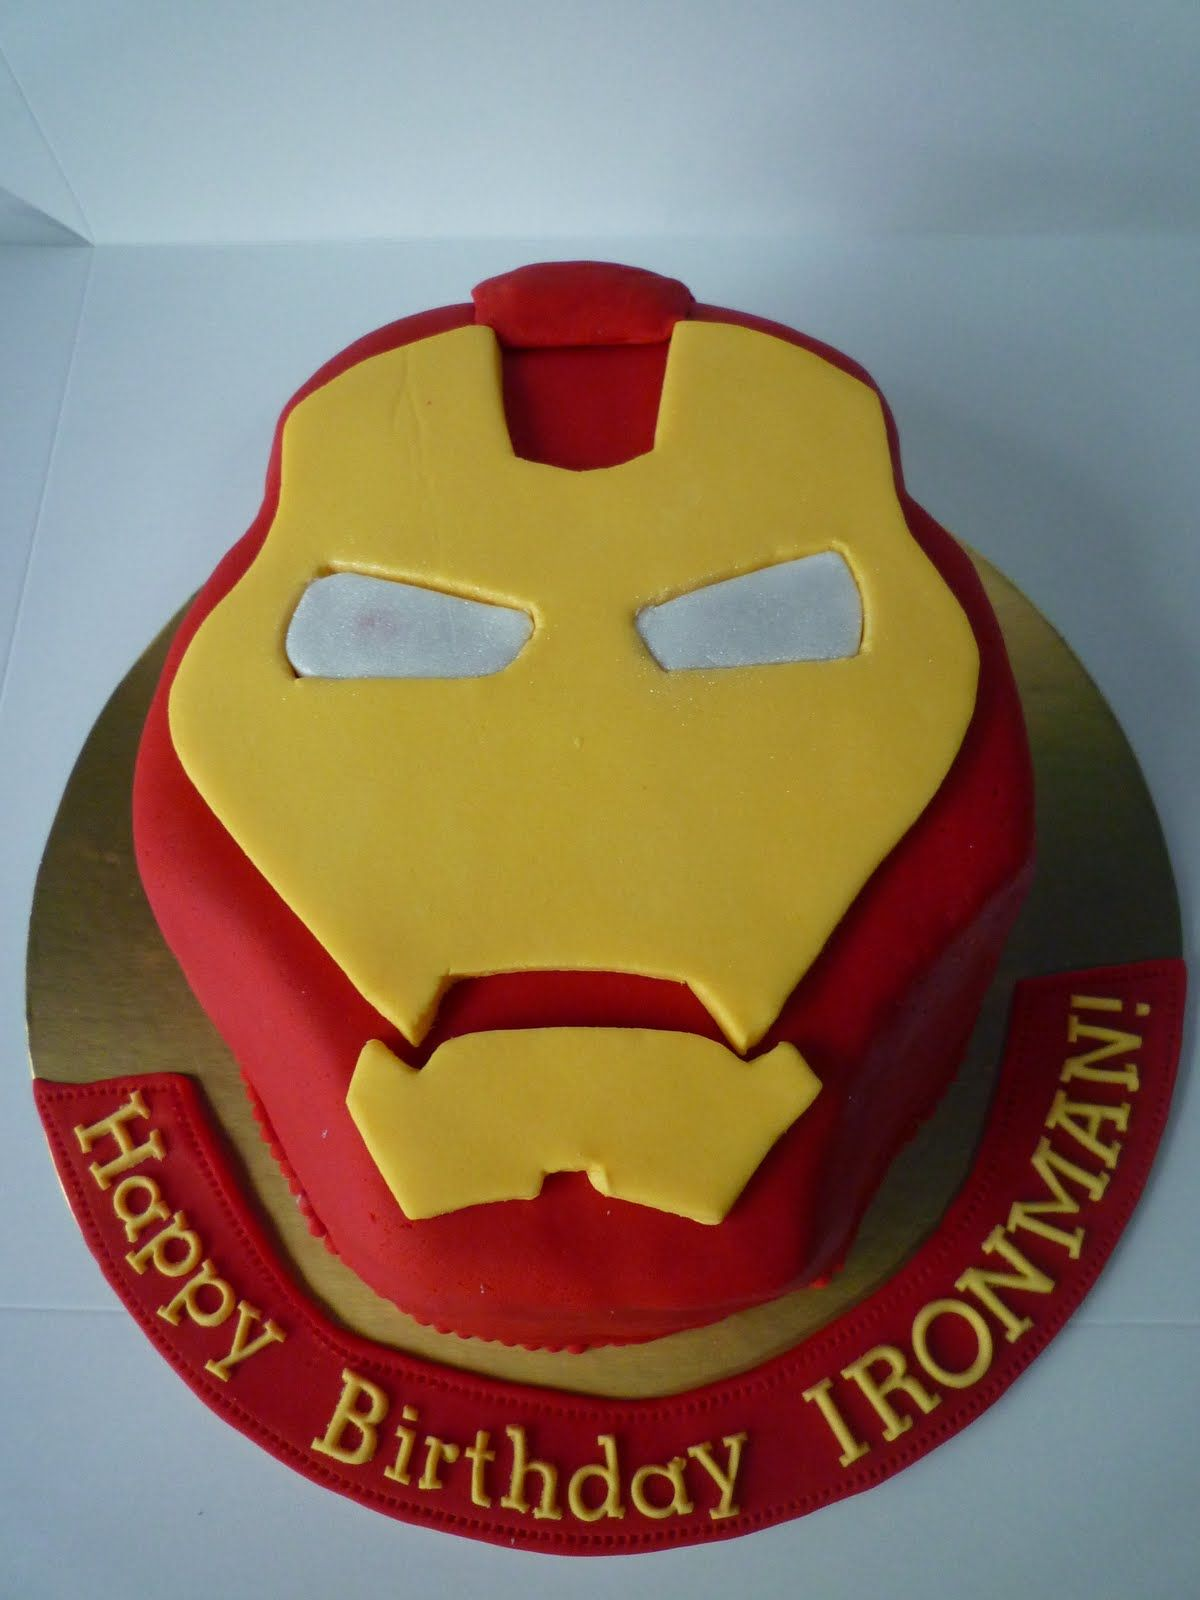 Iron Man Cake Design Blairs birthday Pinterest Iron ...